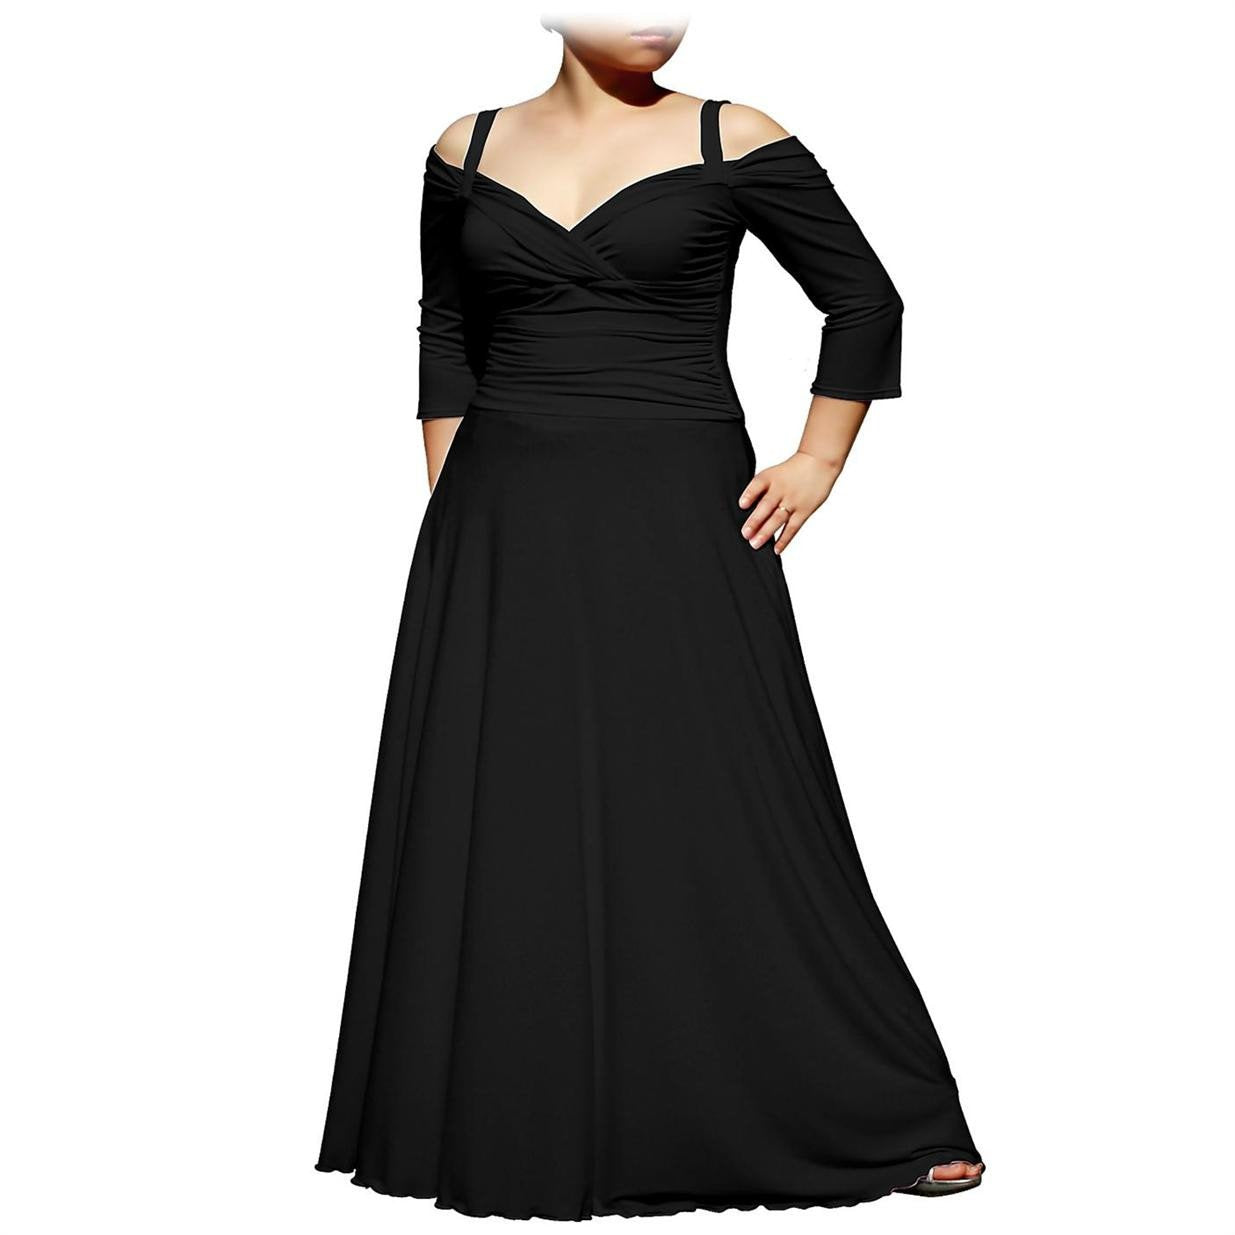 Evanese Formal Evening Dress